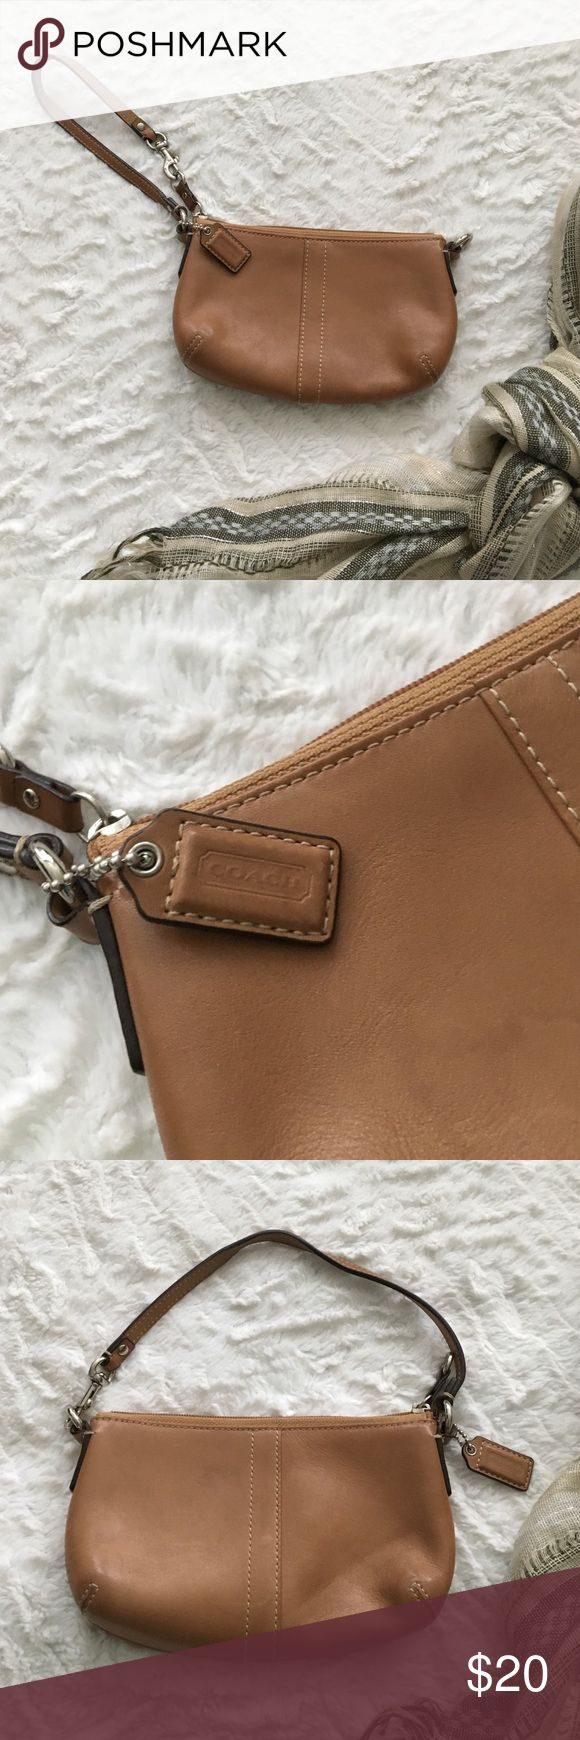 "Tan Coach Wristlet Simple tan Coach wristlet. It's been used a few times but it's in good condition. No marks at all in the lining inside and the leather looks good on the outside too. It has a strap that you can adjust to change it from a wristlet to a small purse. It's 7.5"" by 4"". Coach Bags Clutches & Wristlets"